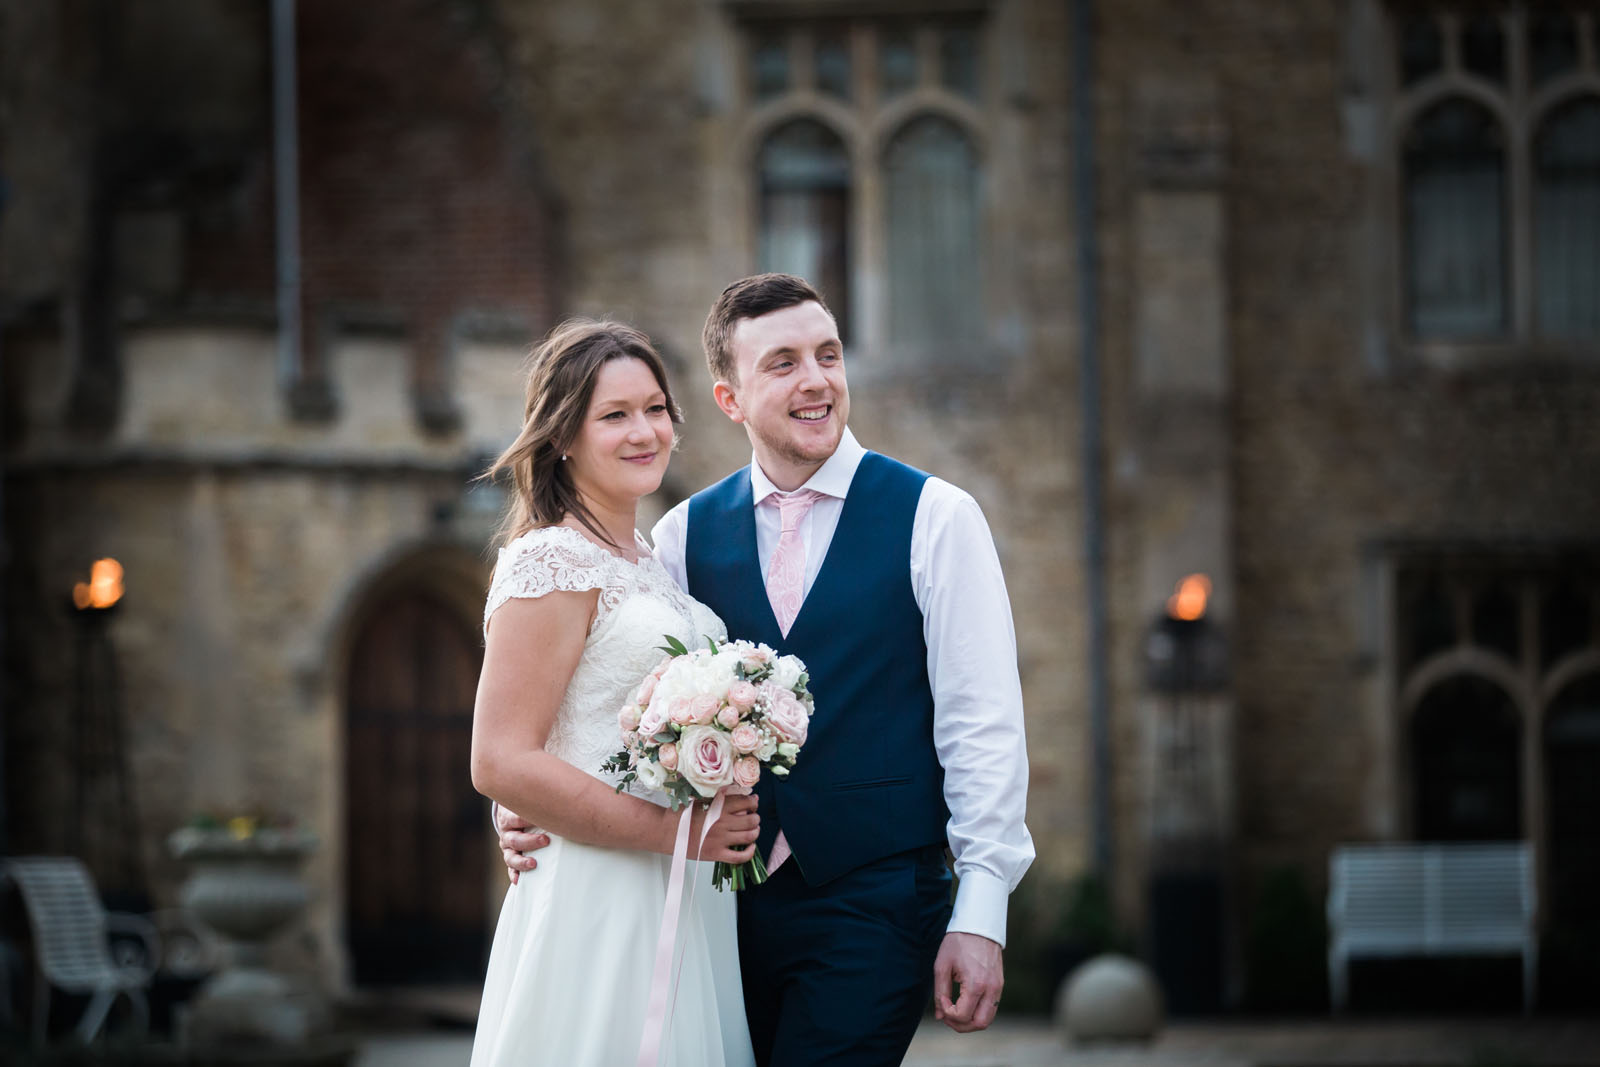 Notley Abbey Wedding Photography Buckinghamshire